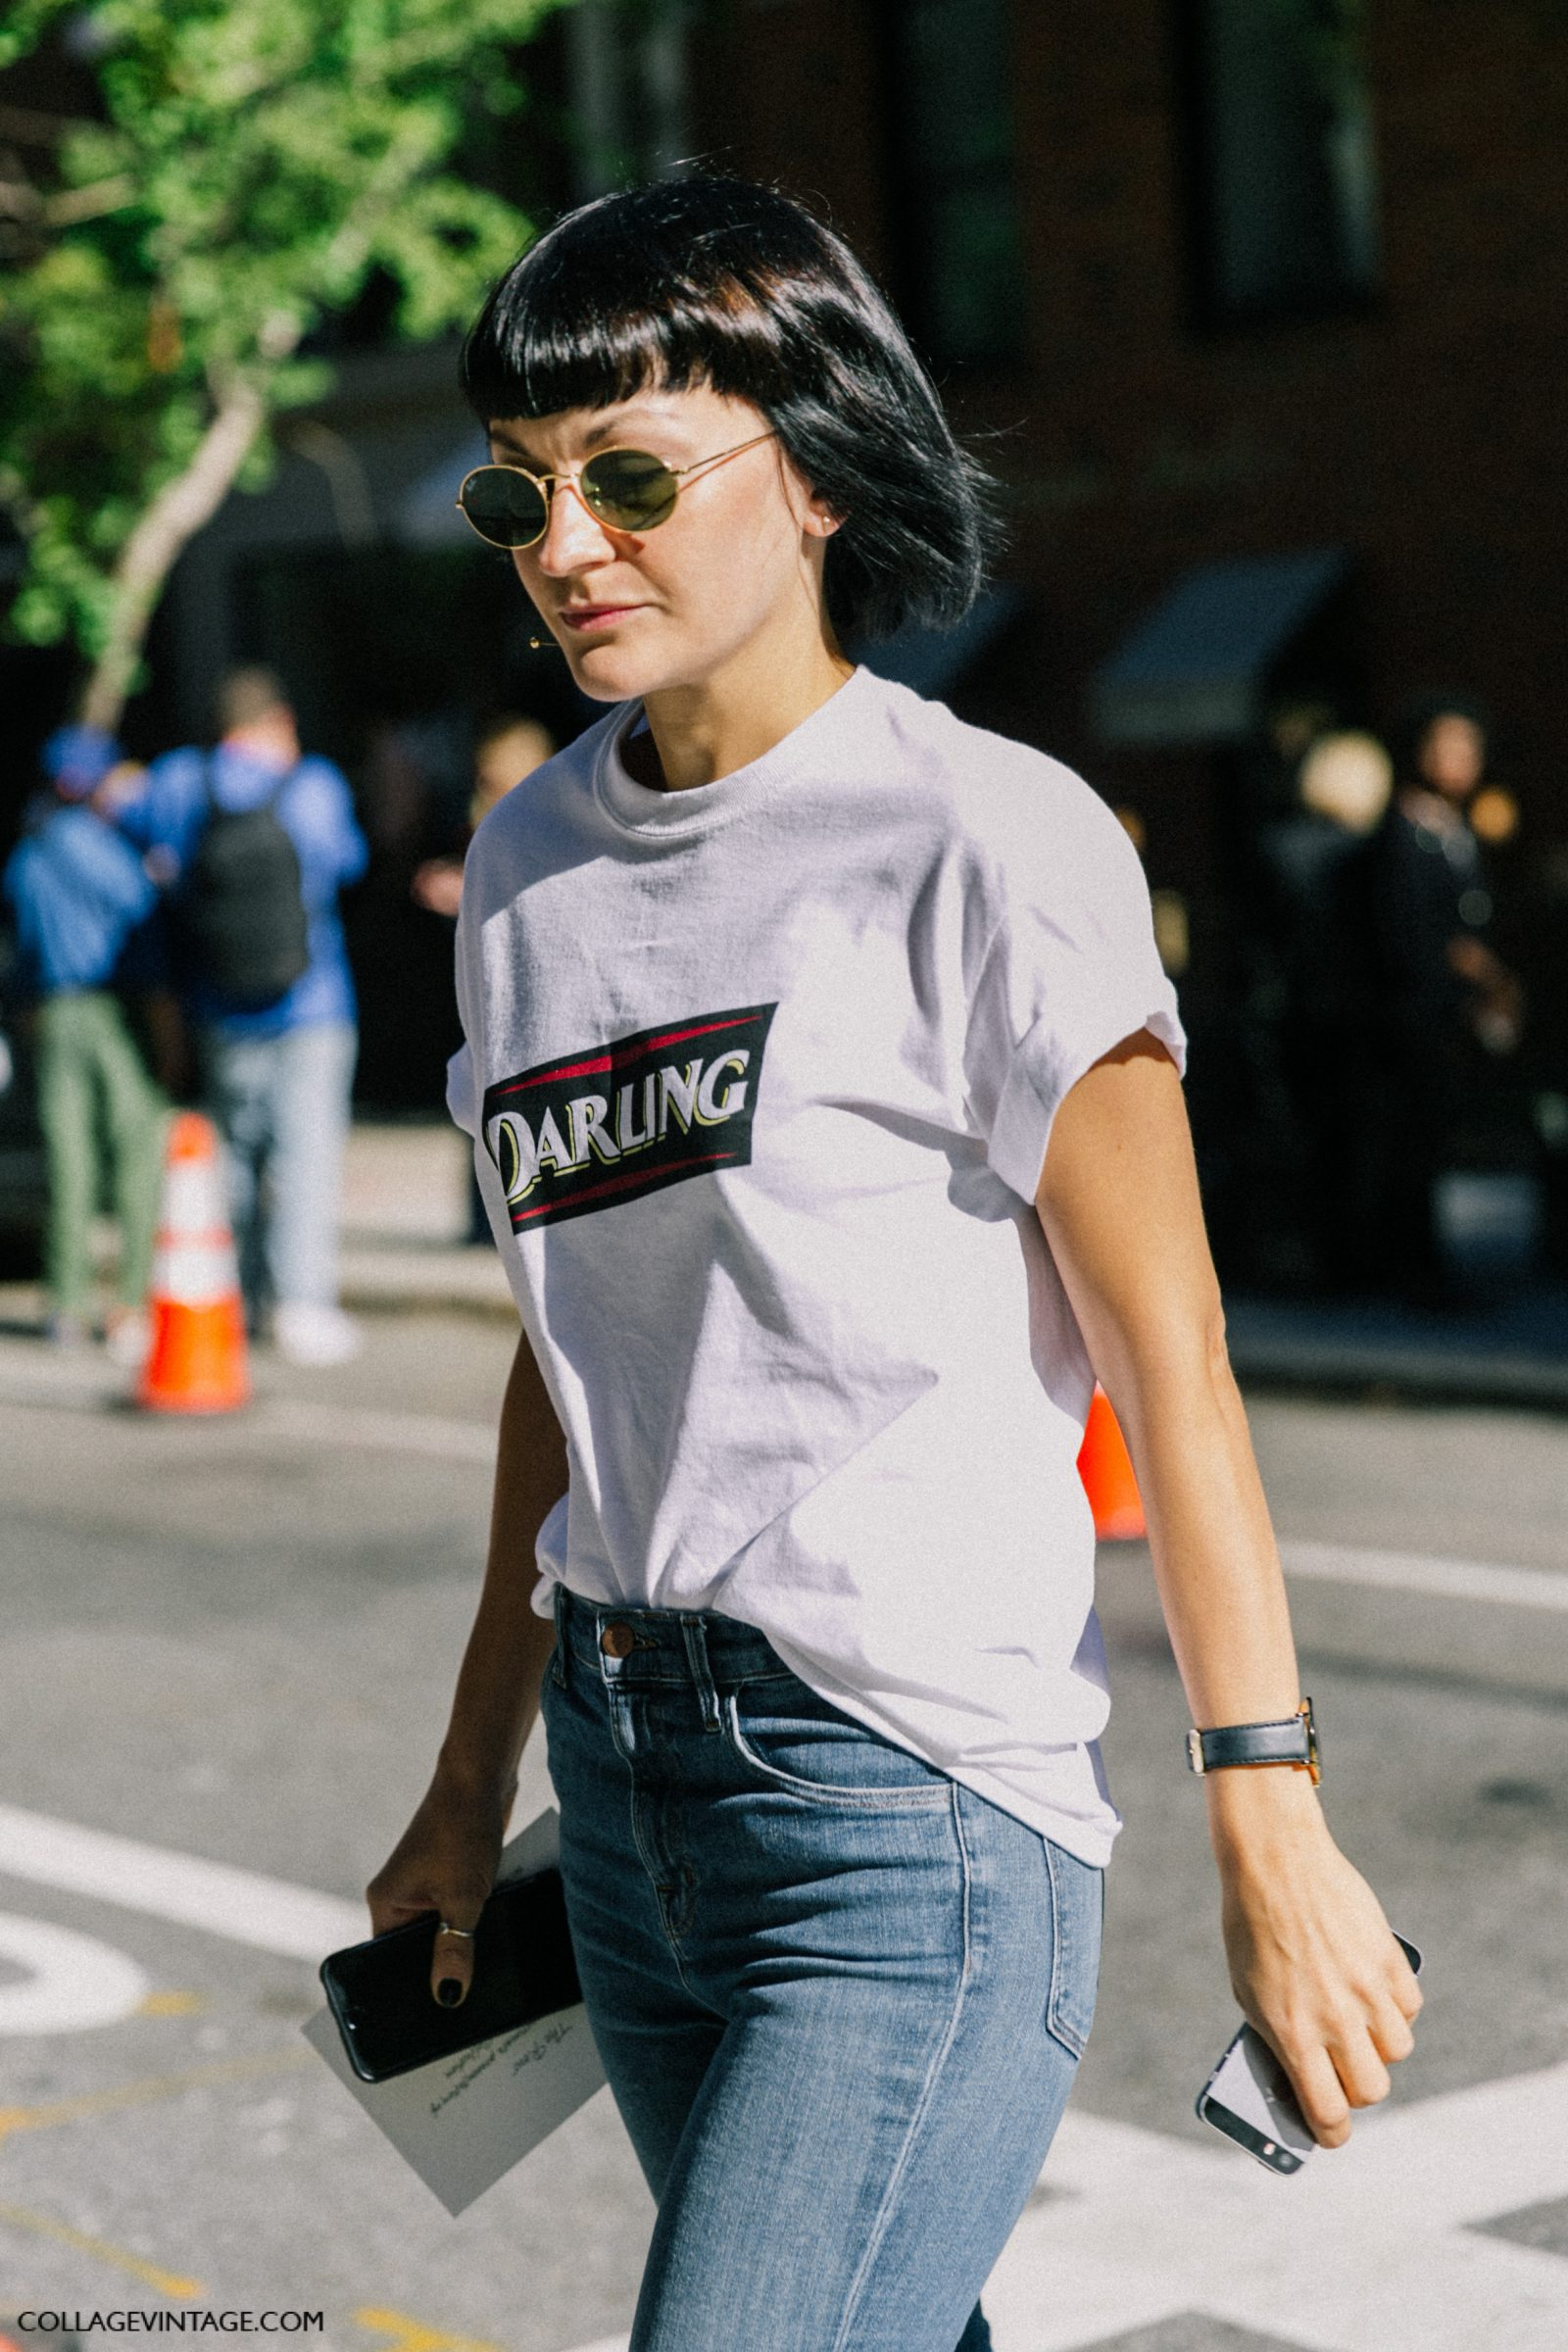 nyfw-new_york_fashion_week_ss17-street_style-outfits-collage_vintage-vintage-phillip_lim-the-row-proenza_schouler-rossie_aussolin-16